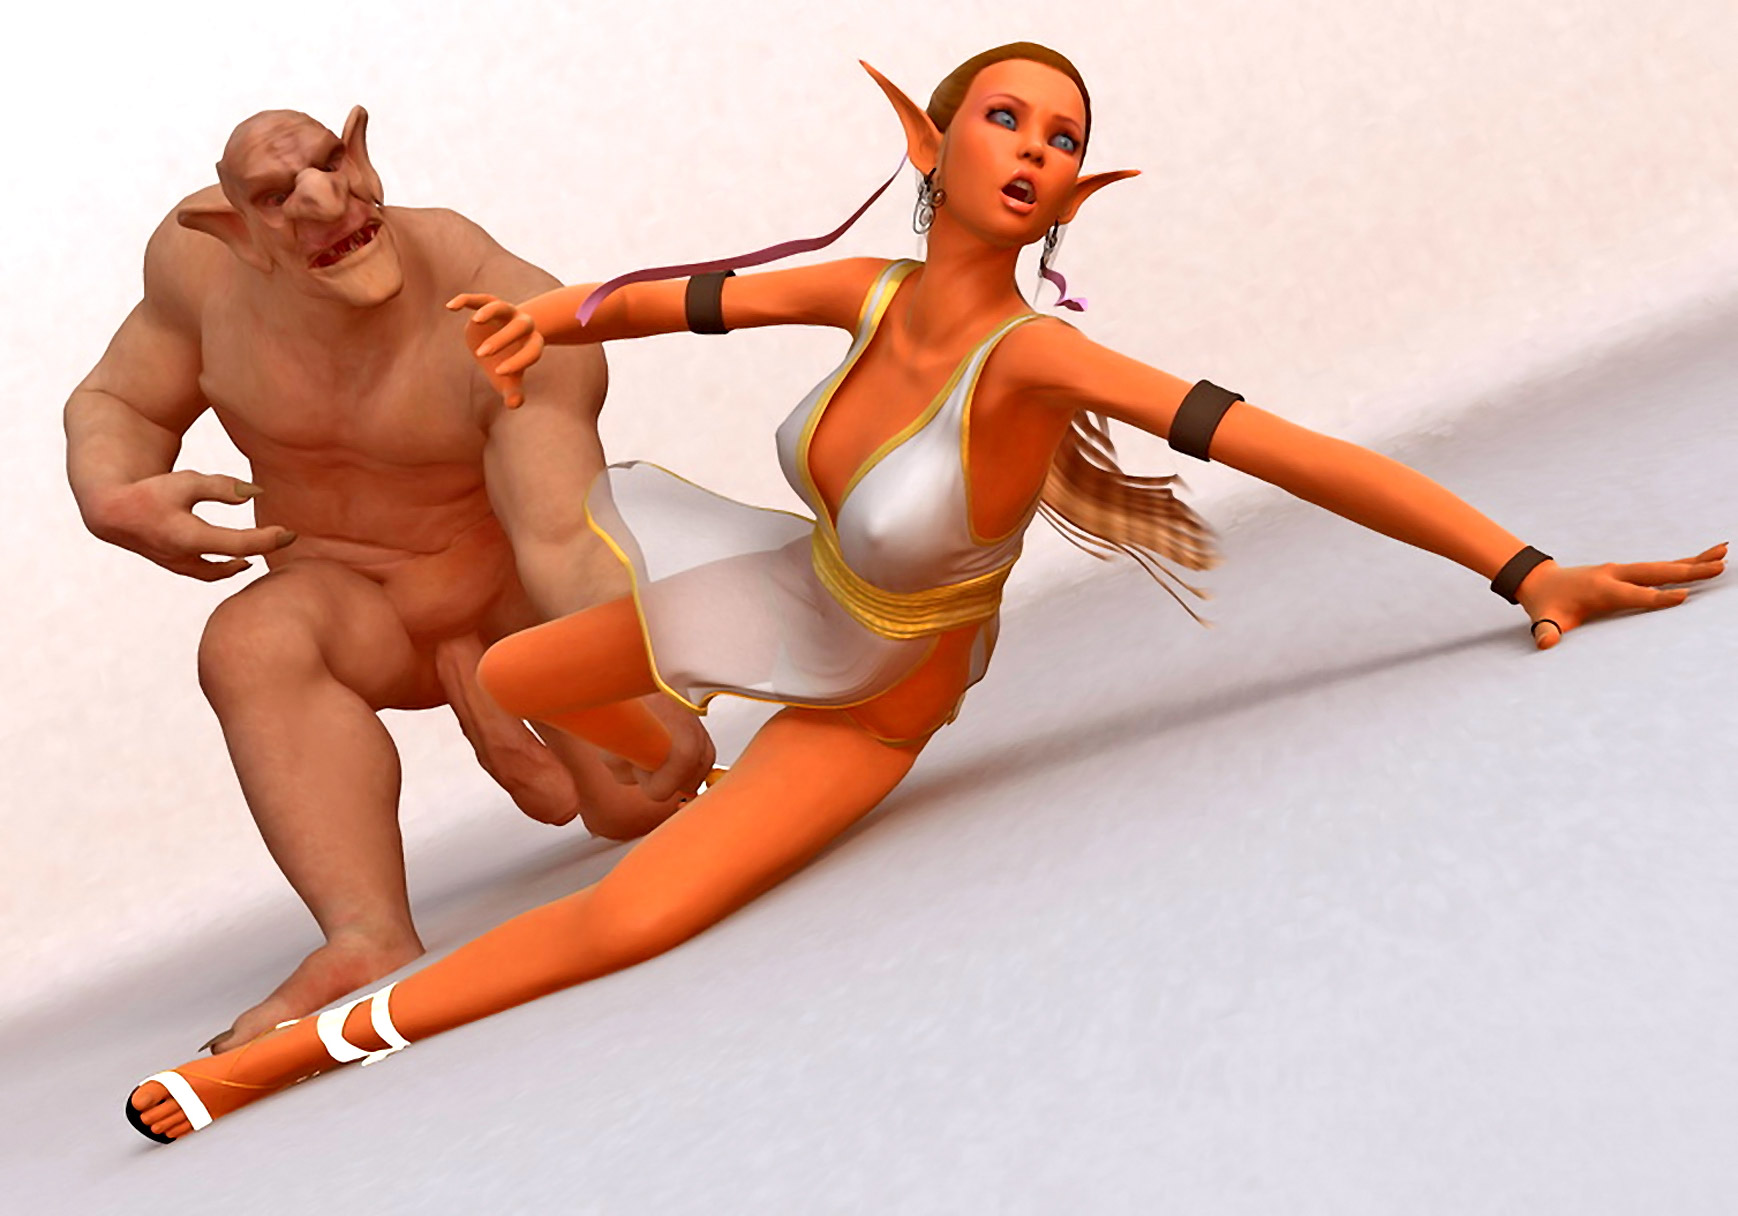 Cartoon wood elf caught by troll porn erotica video